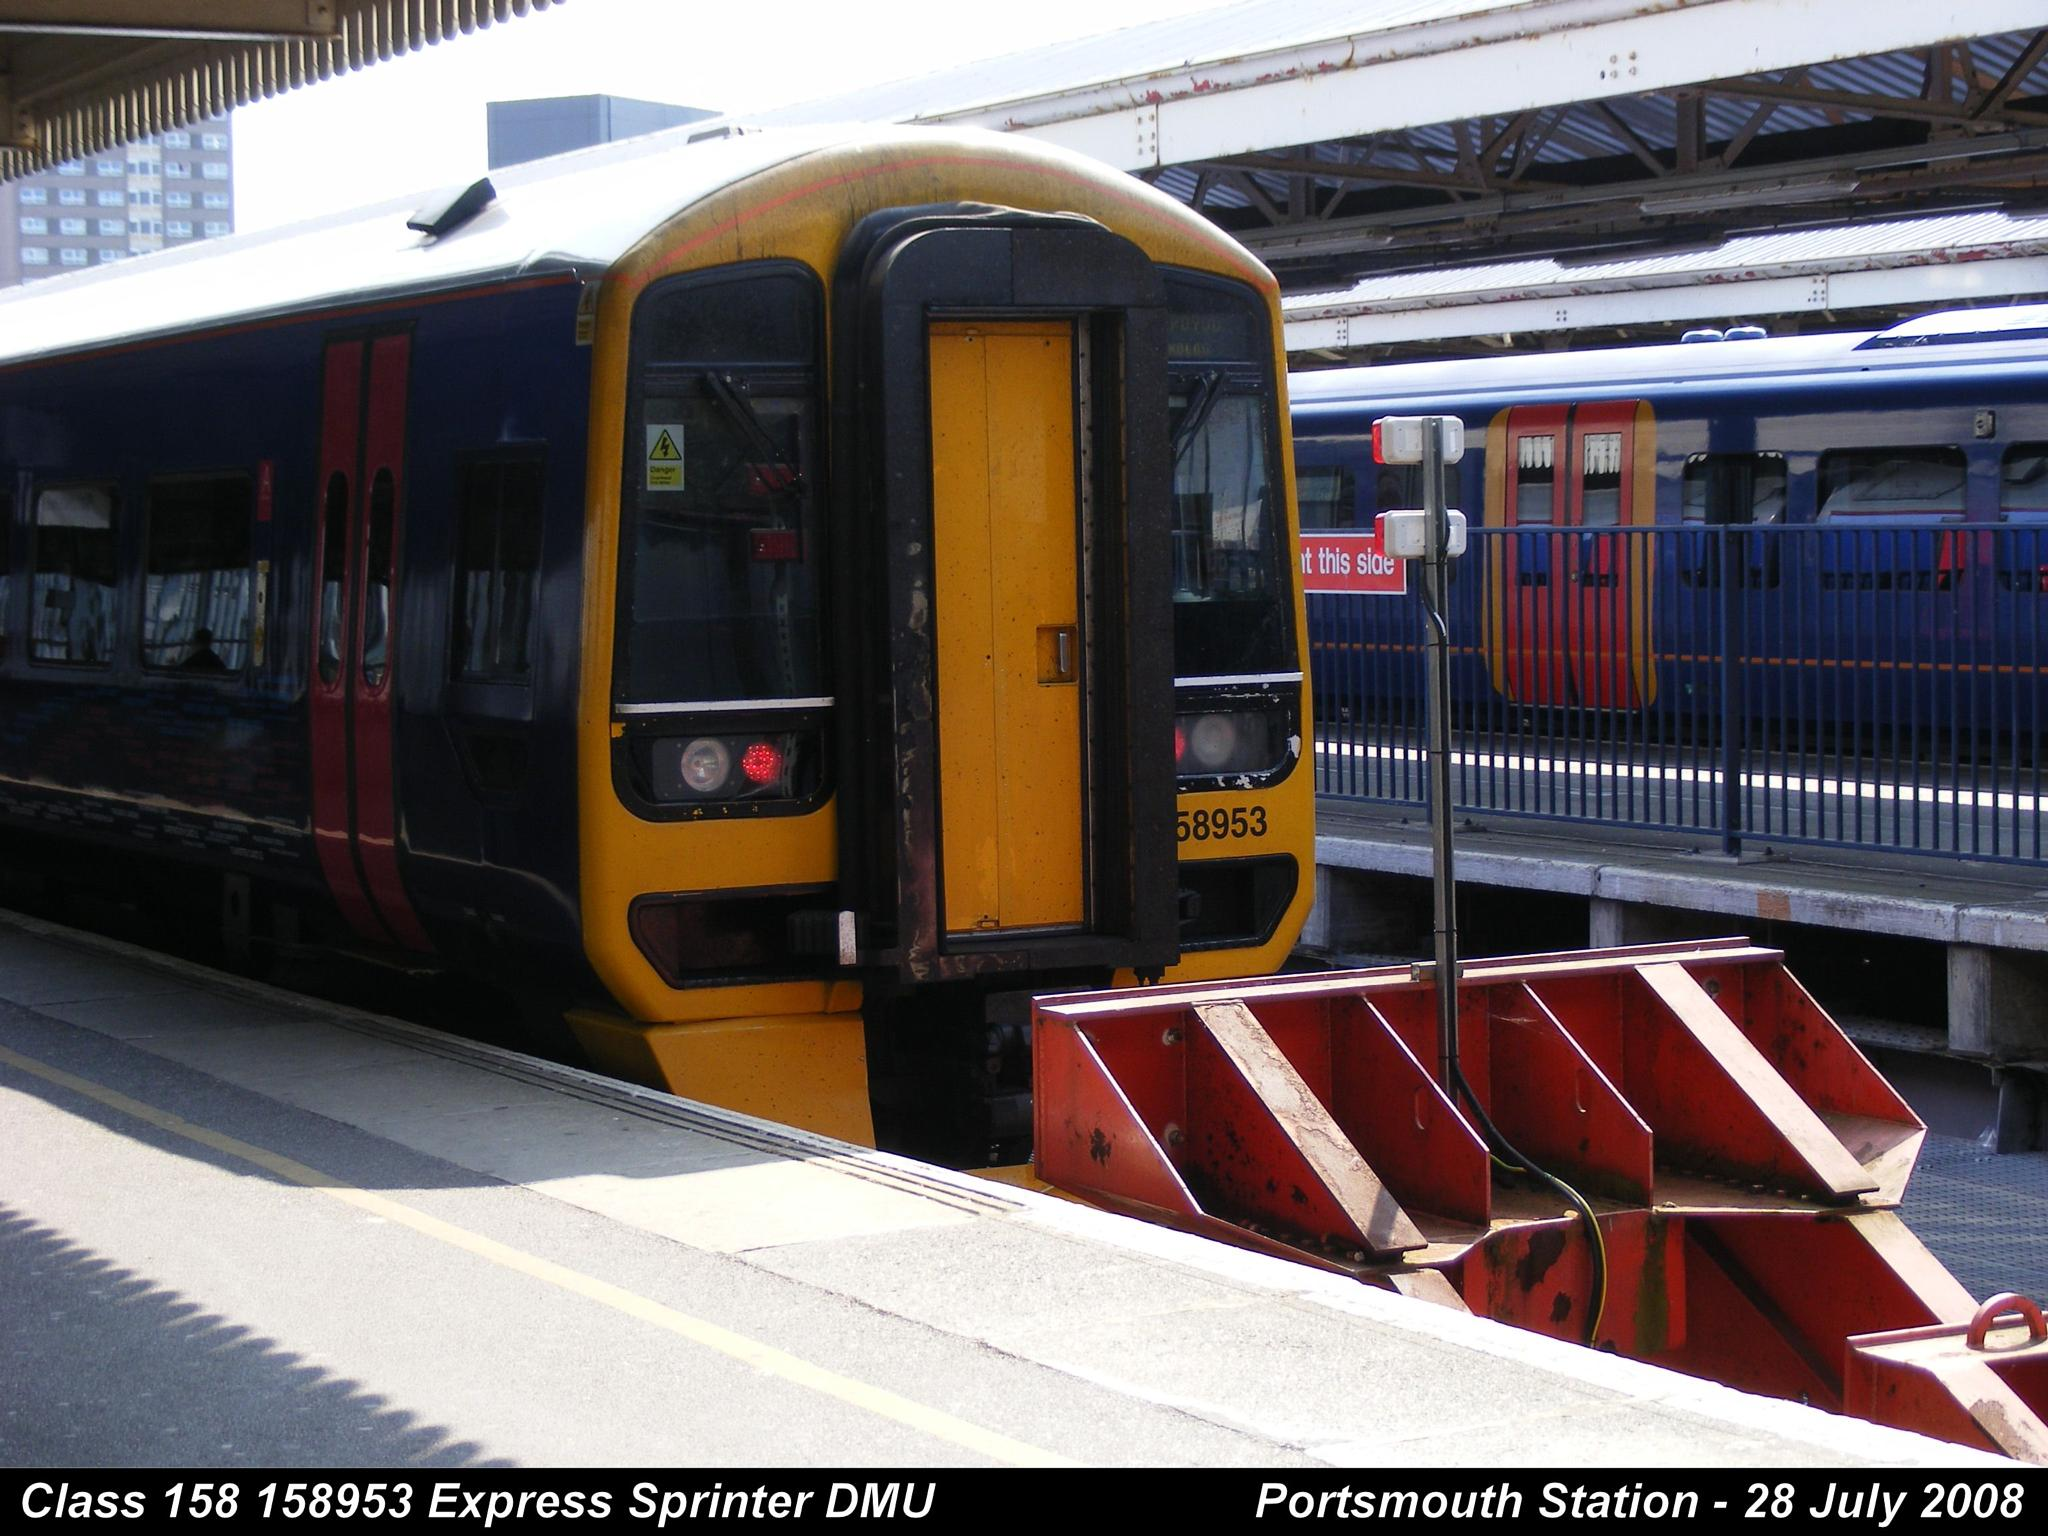 Class 158 158953 Express Sprinter Diesel Multiple Unit by Graham Wood Photo Collection